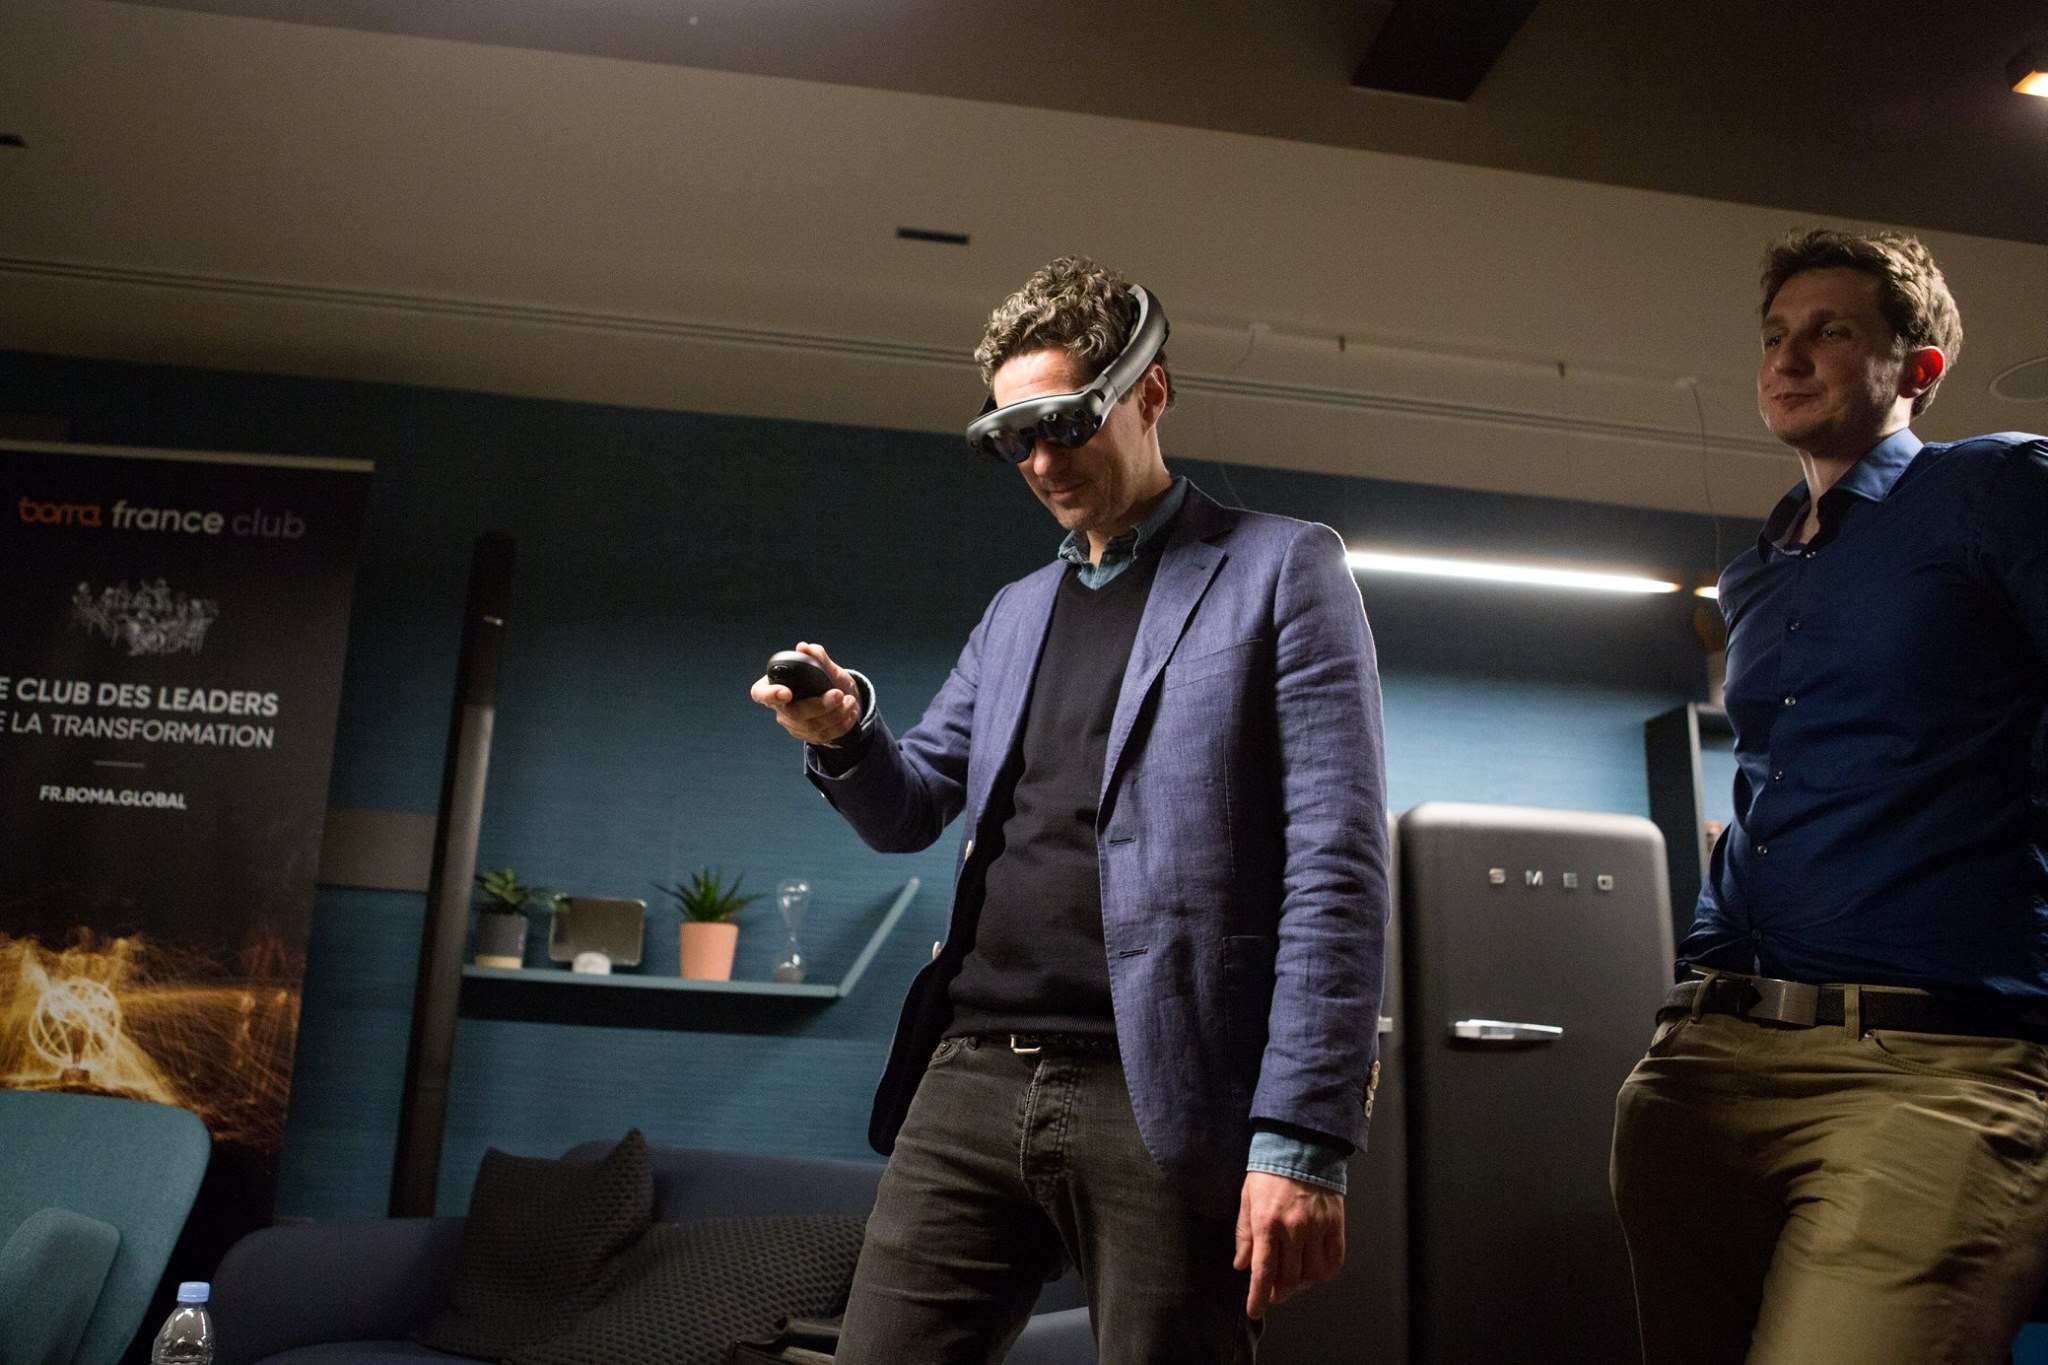 A man tries a virtual reality headset at a Boma France Club event. Credit: Boma France